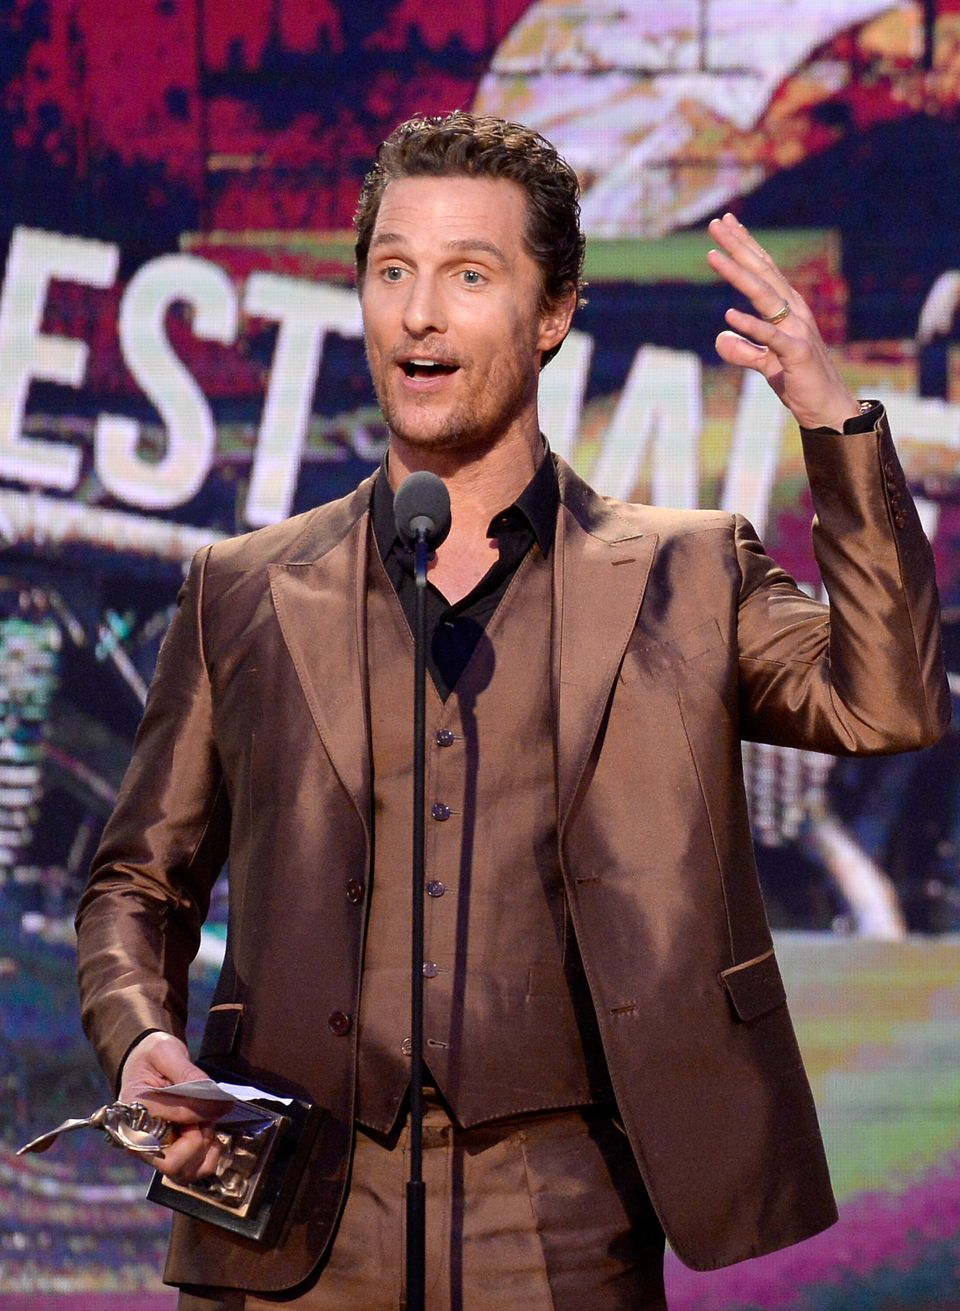 SANTA MONICA, CA - MARCH 01:  Actor Matthew McConaughey accepts the Best Male Lead award for 'Dallas Buyers Club' onstage dur